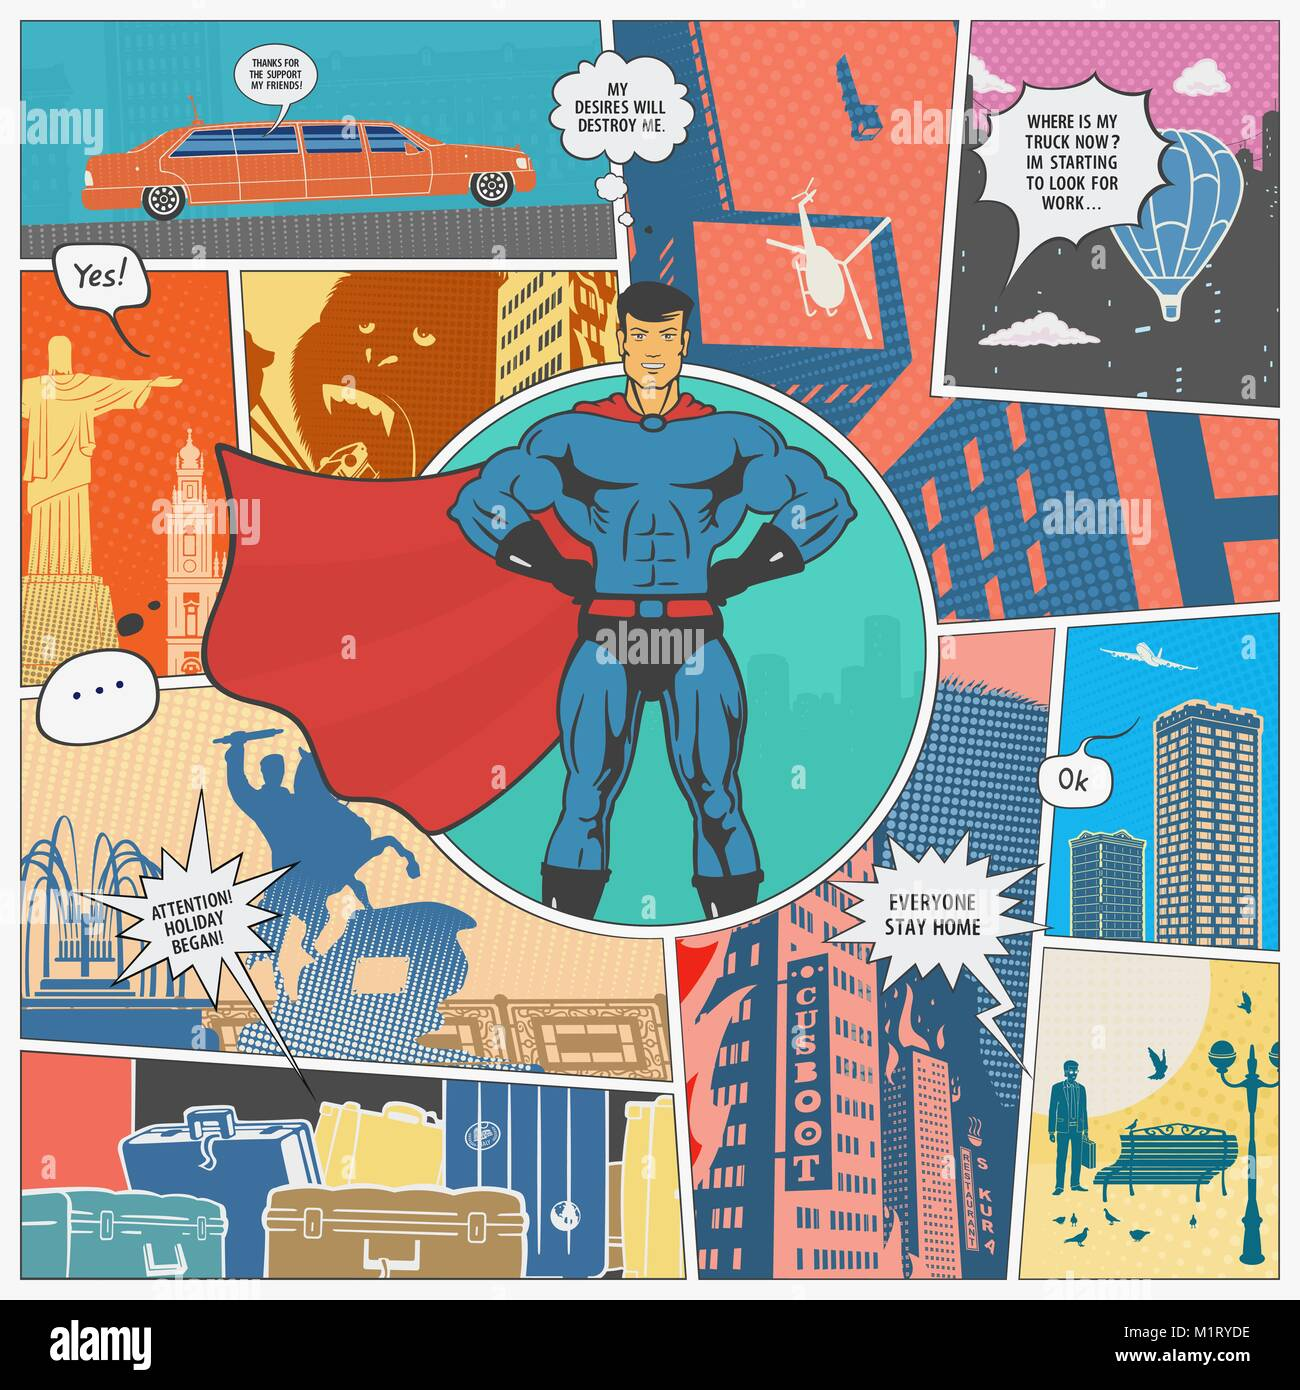 The Page Comics Layout Concept - Stock Vector